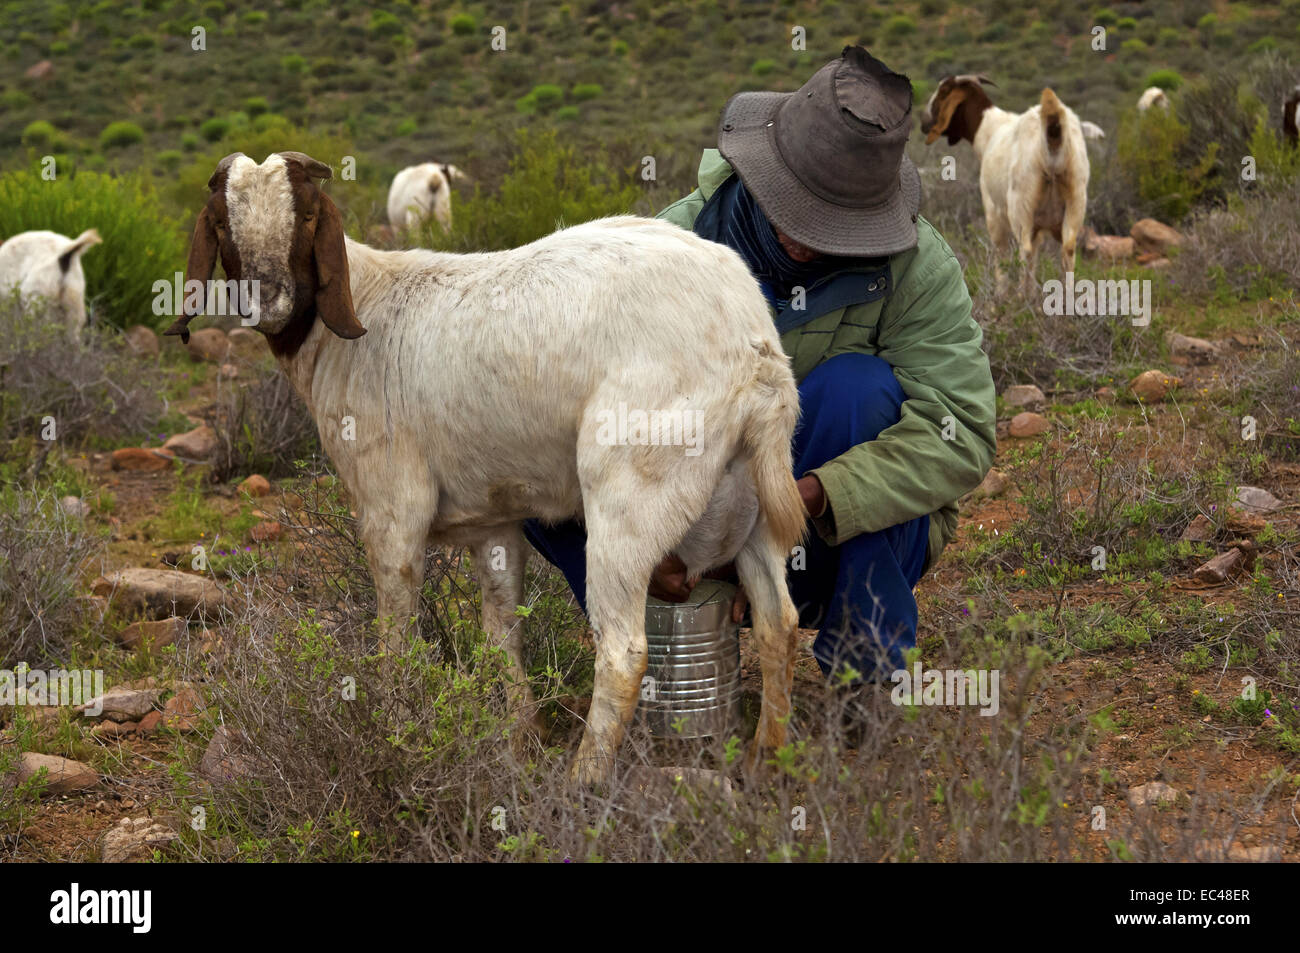 how to become a goat herder